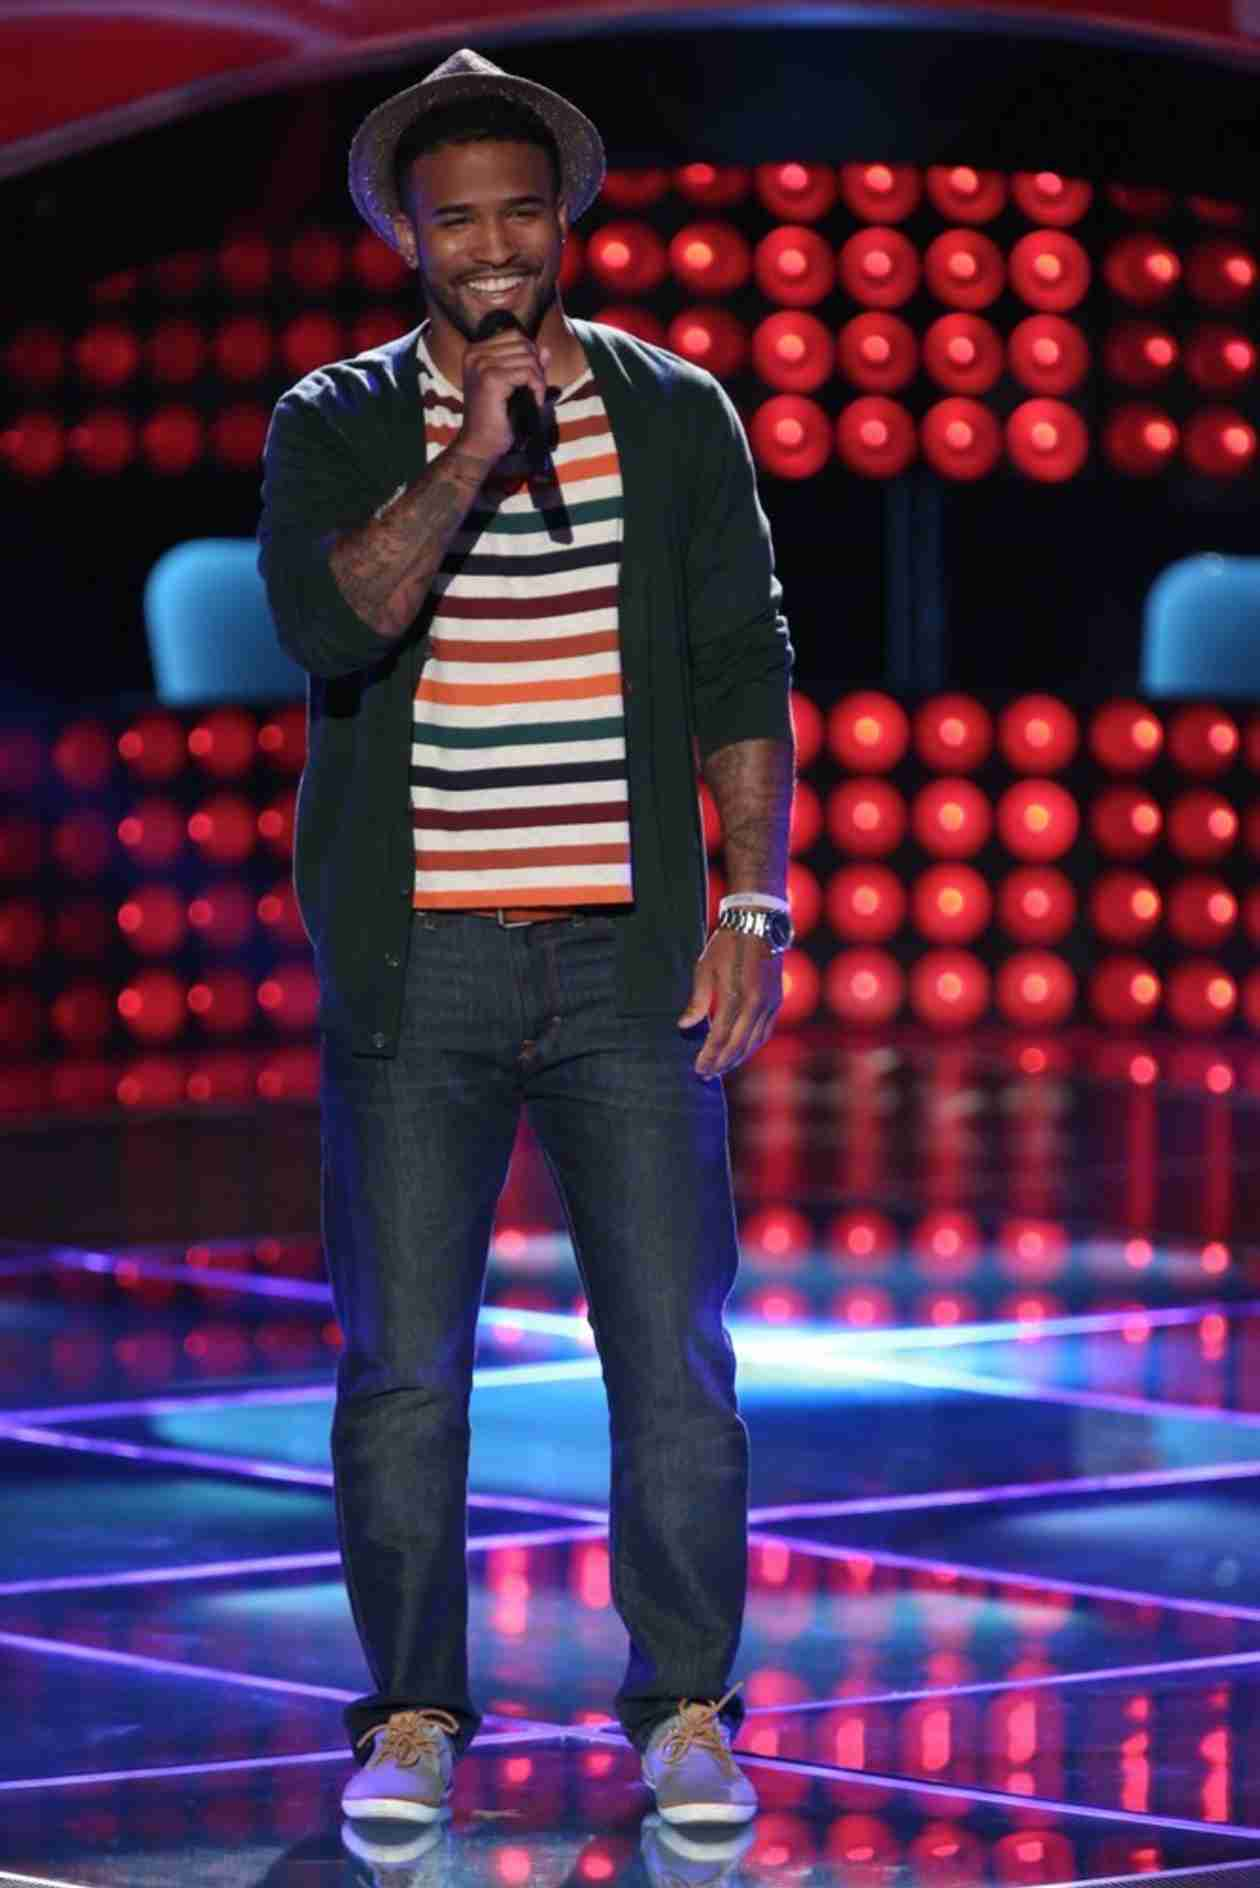 Watch Joshua Howard Sing on The Voice 2014 Season 6 Blind Auditions March 3, 2013 (VIDEO)